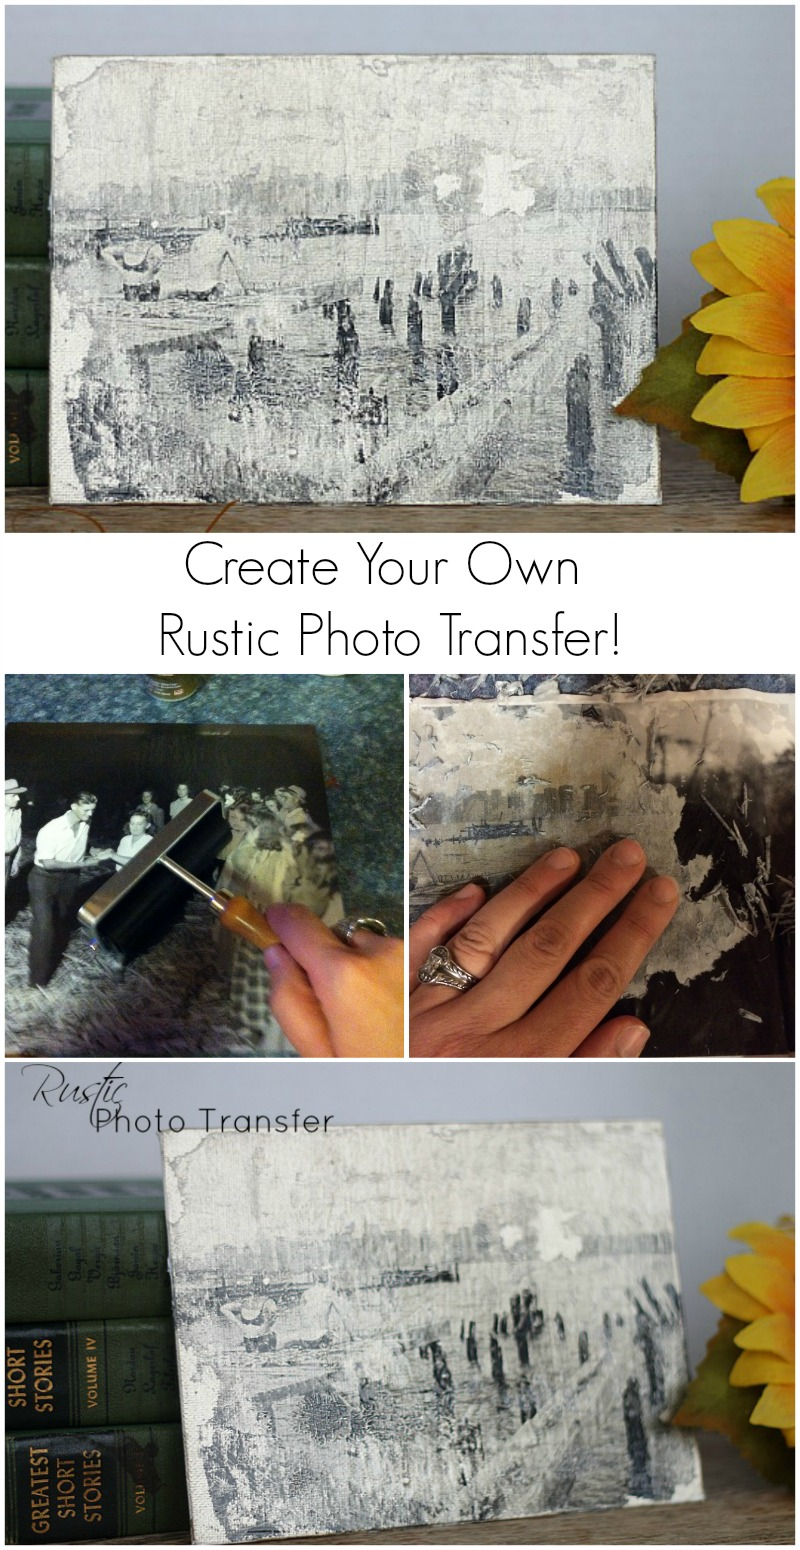 Rustic Photo Transfer--How To